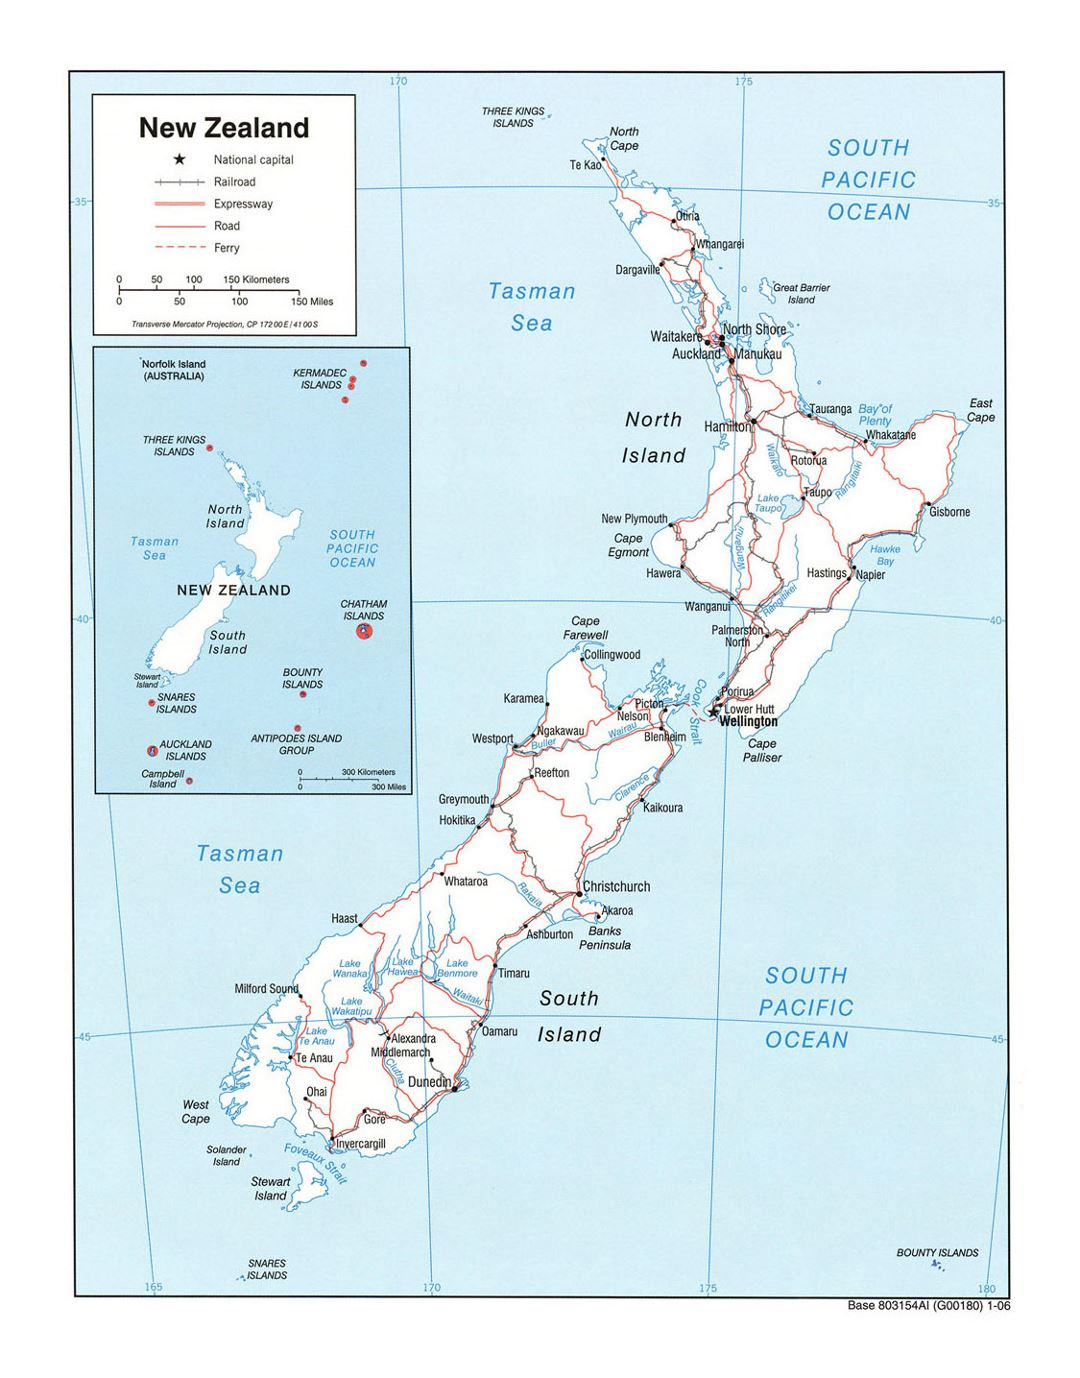 Political Map Of New Zealand.Detailed Political Map Of New Zealand With Roads Railroads And